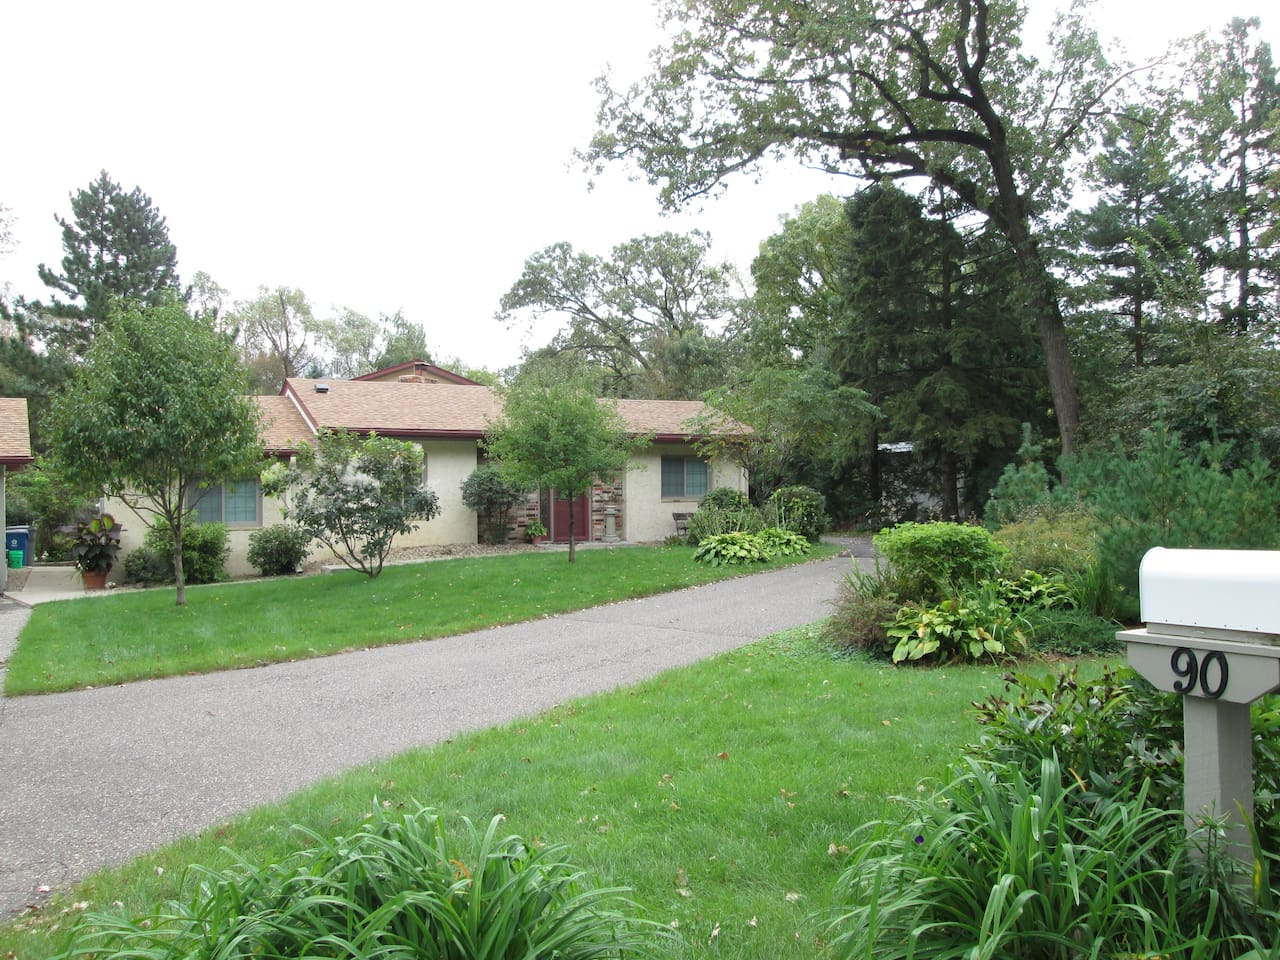 """""""b.r.guest suite"""" Welcome to cozy! Driveway in front of garage door is for your vehicle parking. Cross yard driveway is for our use only. Call & I'll greet you regardless of time or weather. Main level living. Mature gardens & trees. See you soon."""